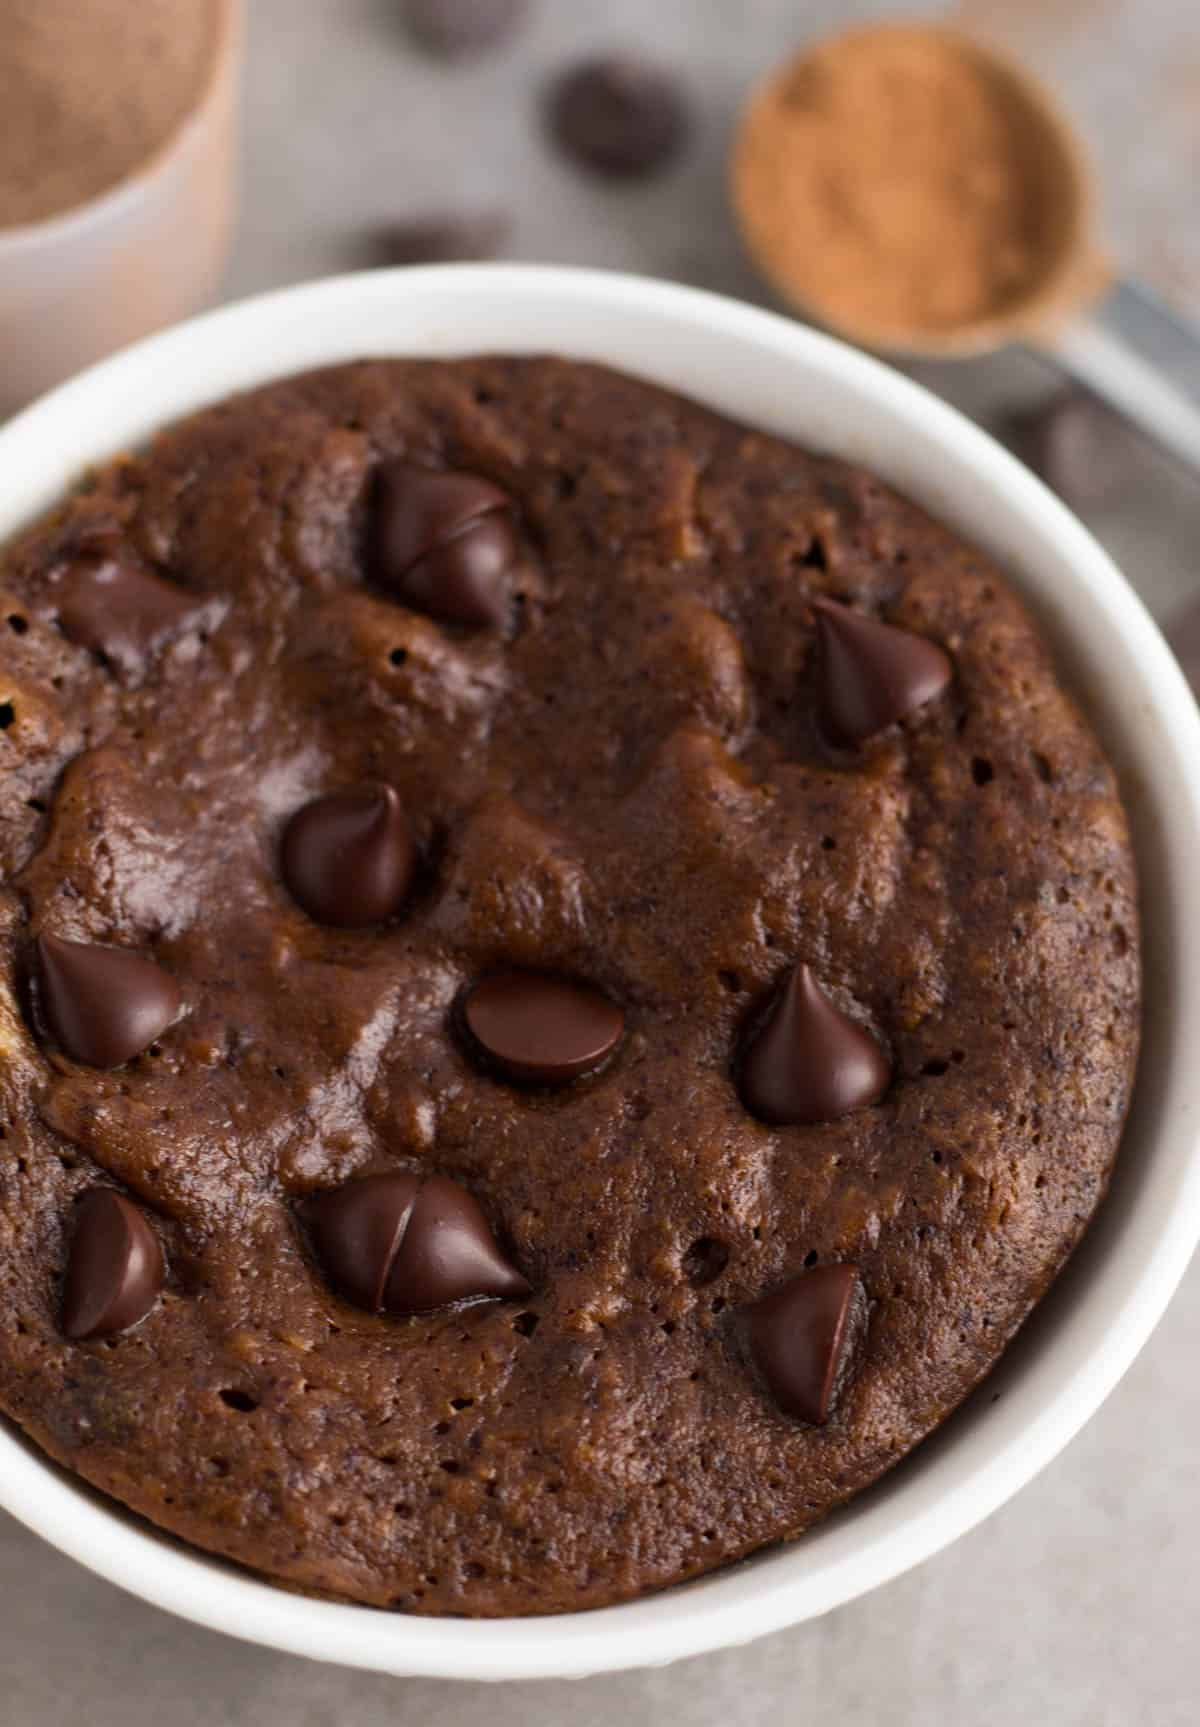 Protein chocolate mug cake right after it comes out of the microwave before it is topped with additional toppings